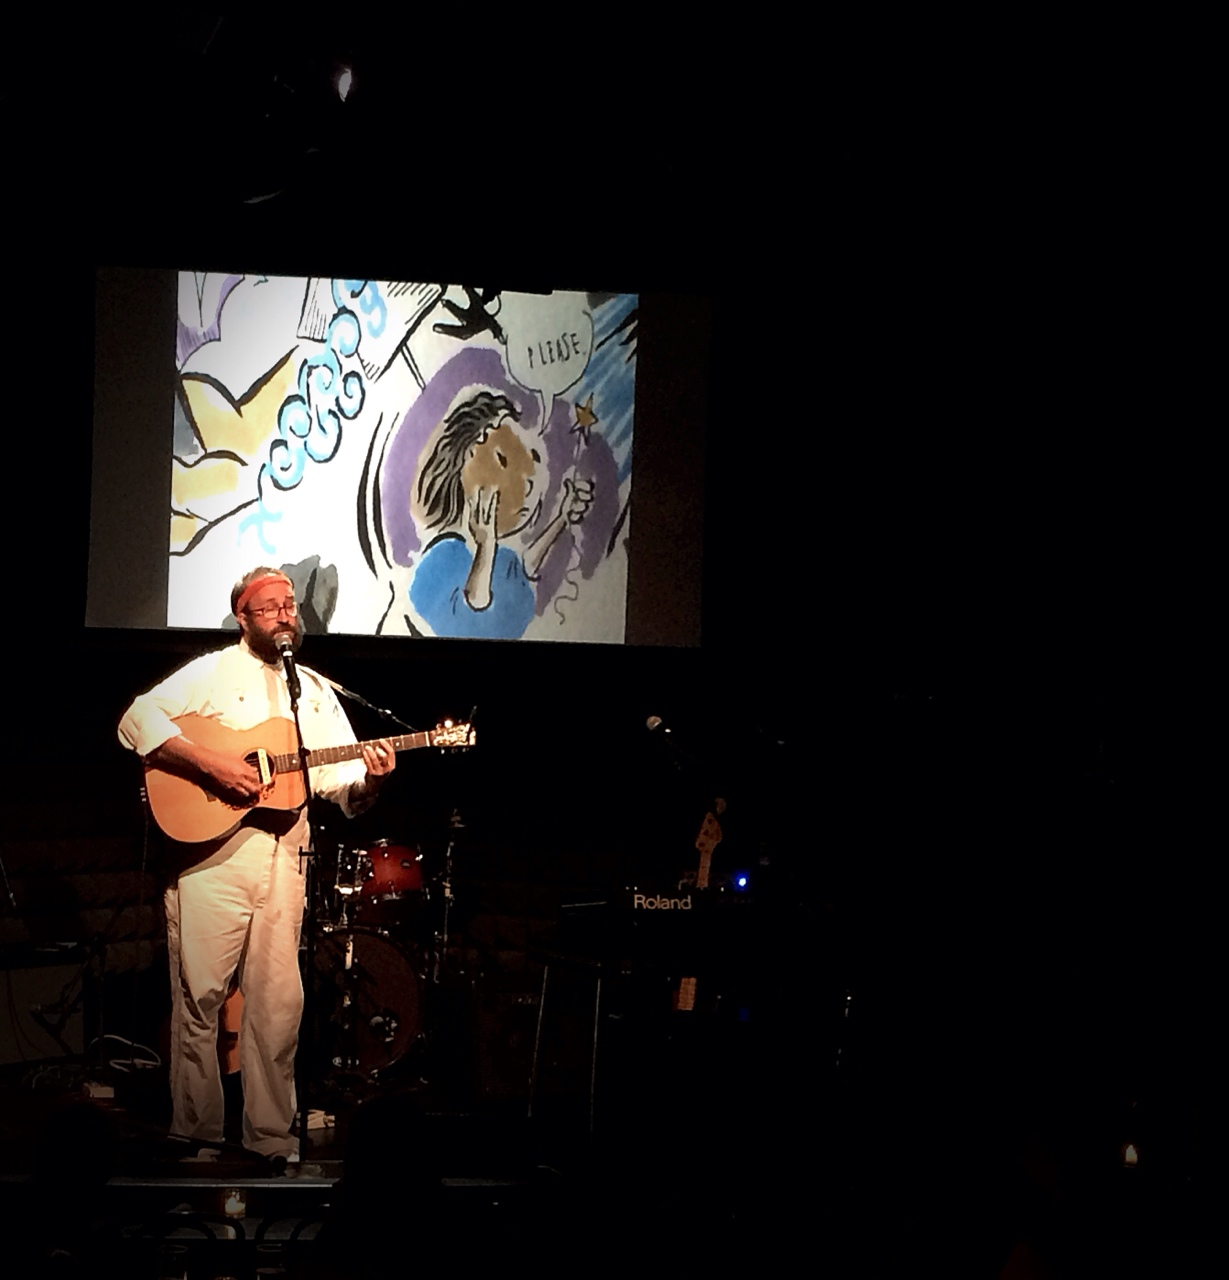 We had a great time last night at  joespub . Here's Pascal doing our encore in front of the drawing I did for Georgiana Starlington. Performing with Balthrop, Alabama is the best thing I get to do …